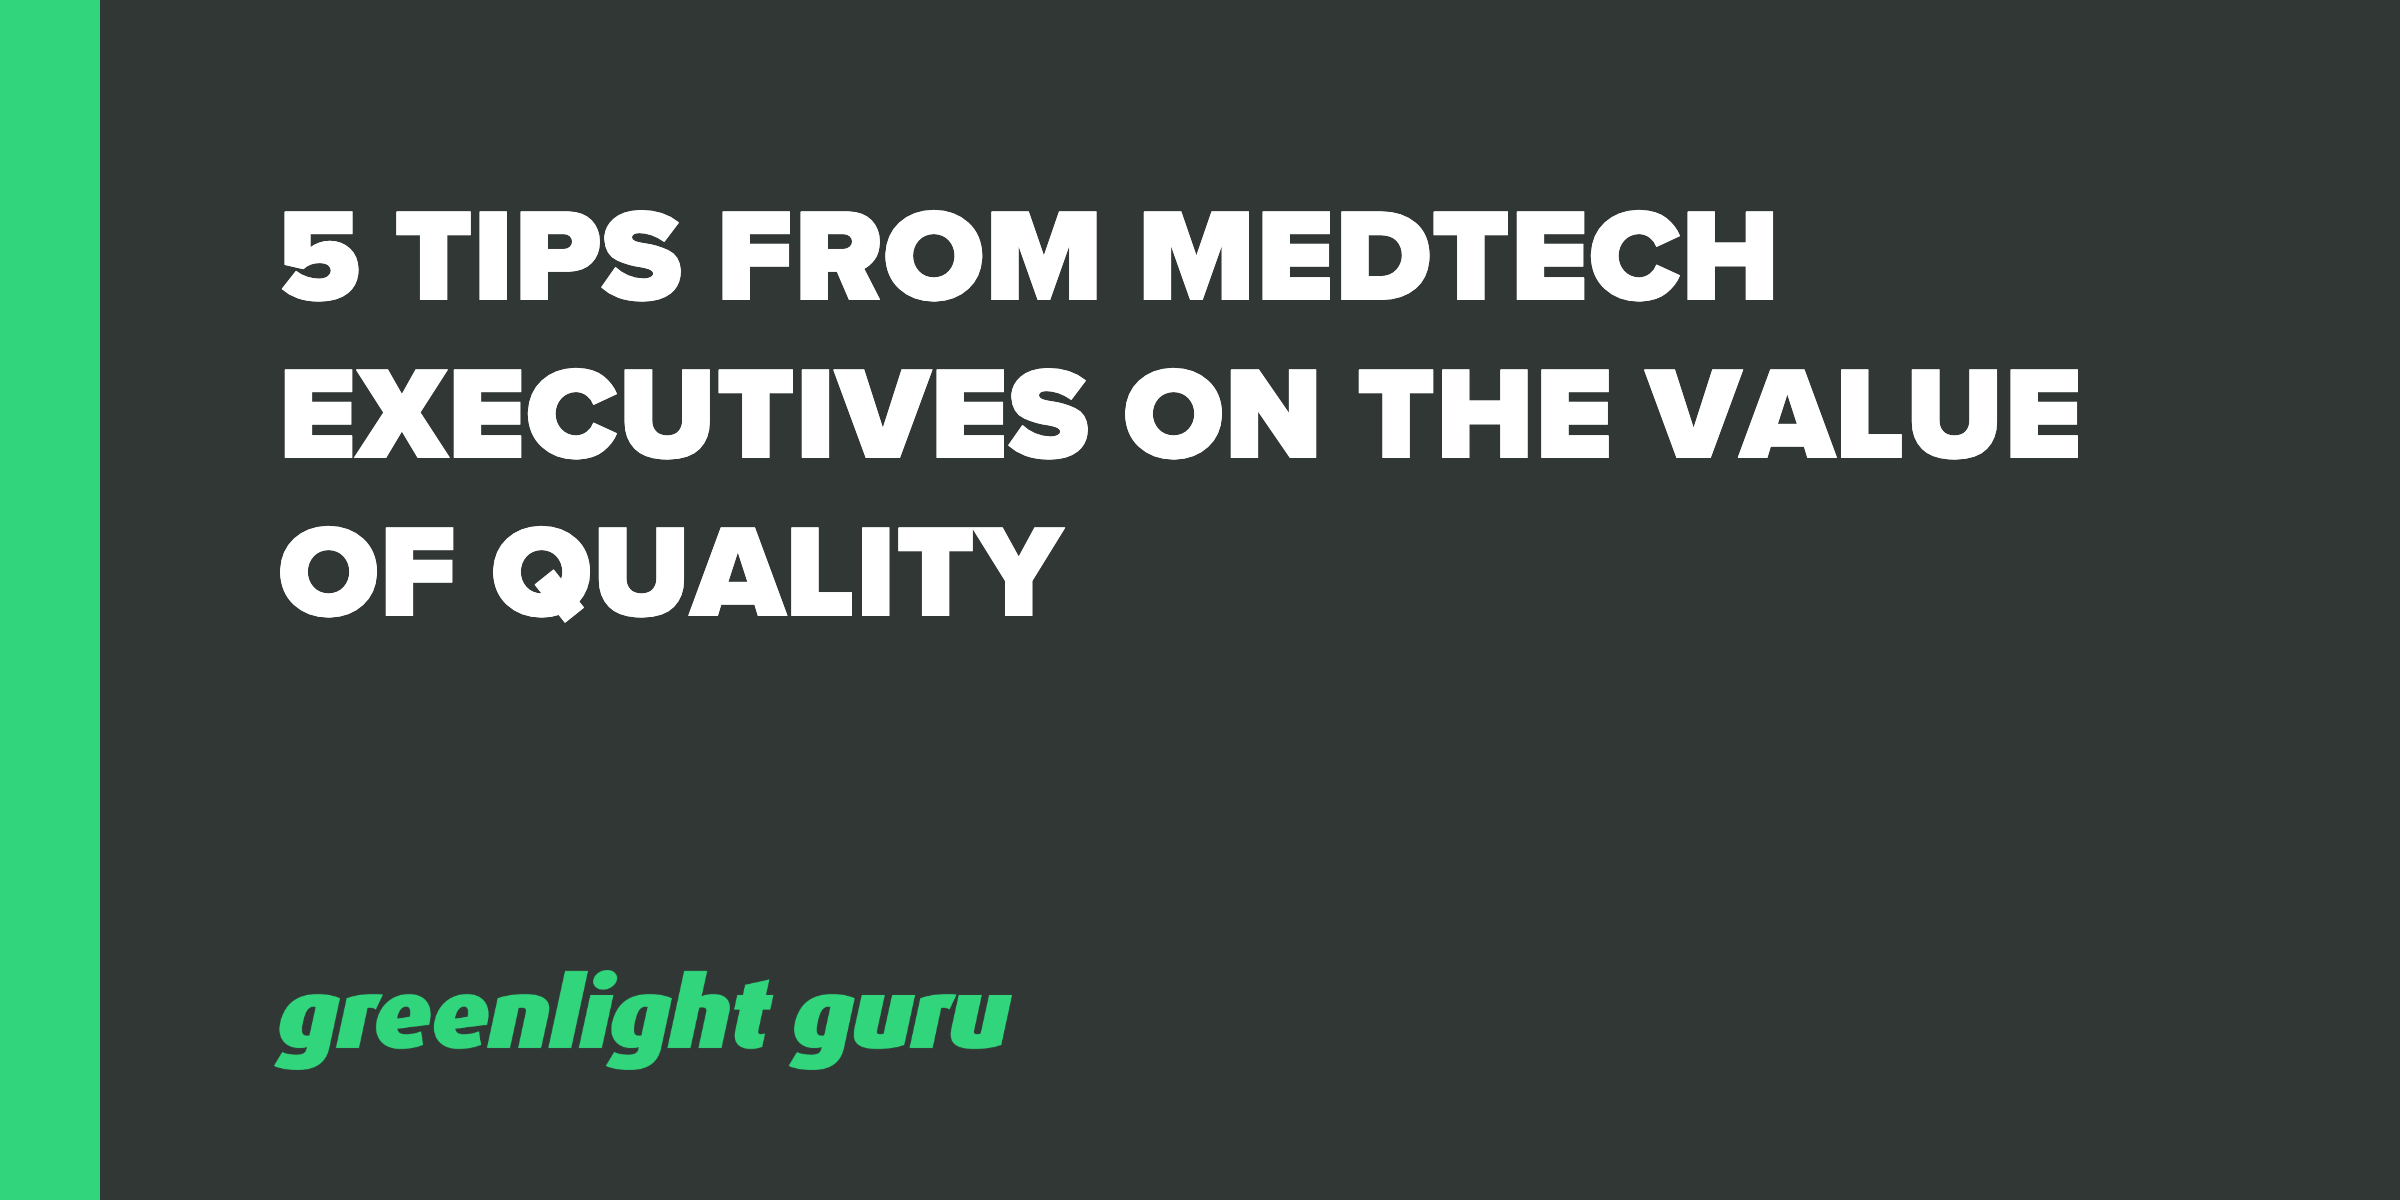 5 tips from medtech executives on the value of quality